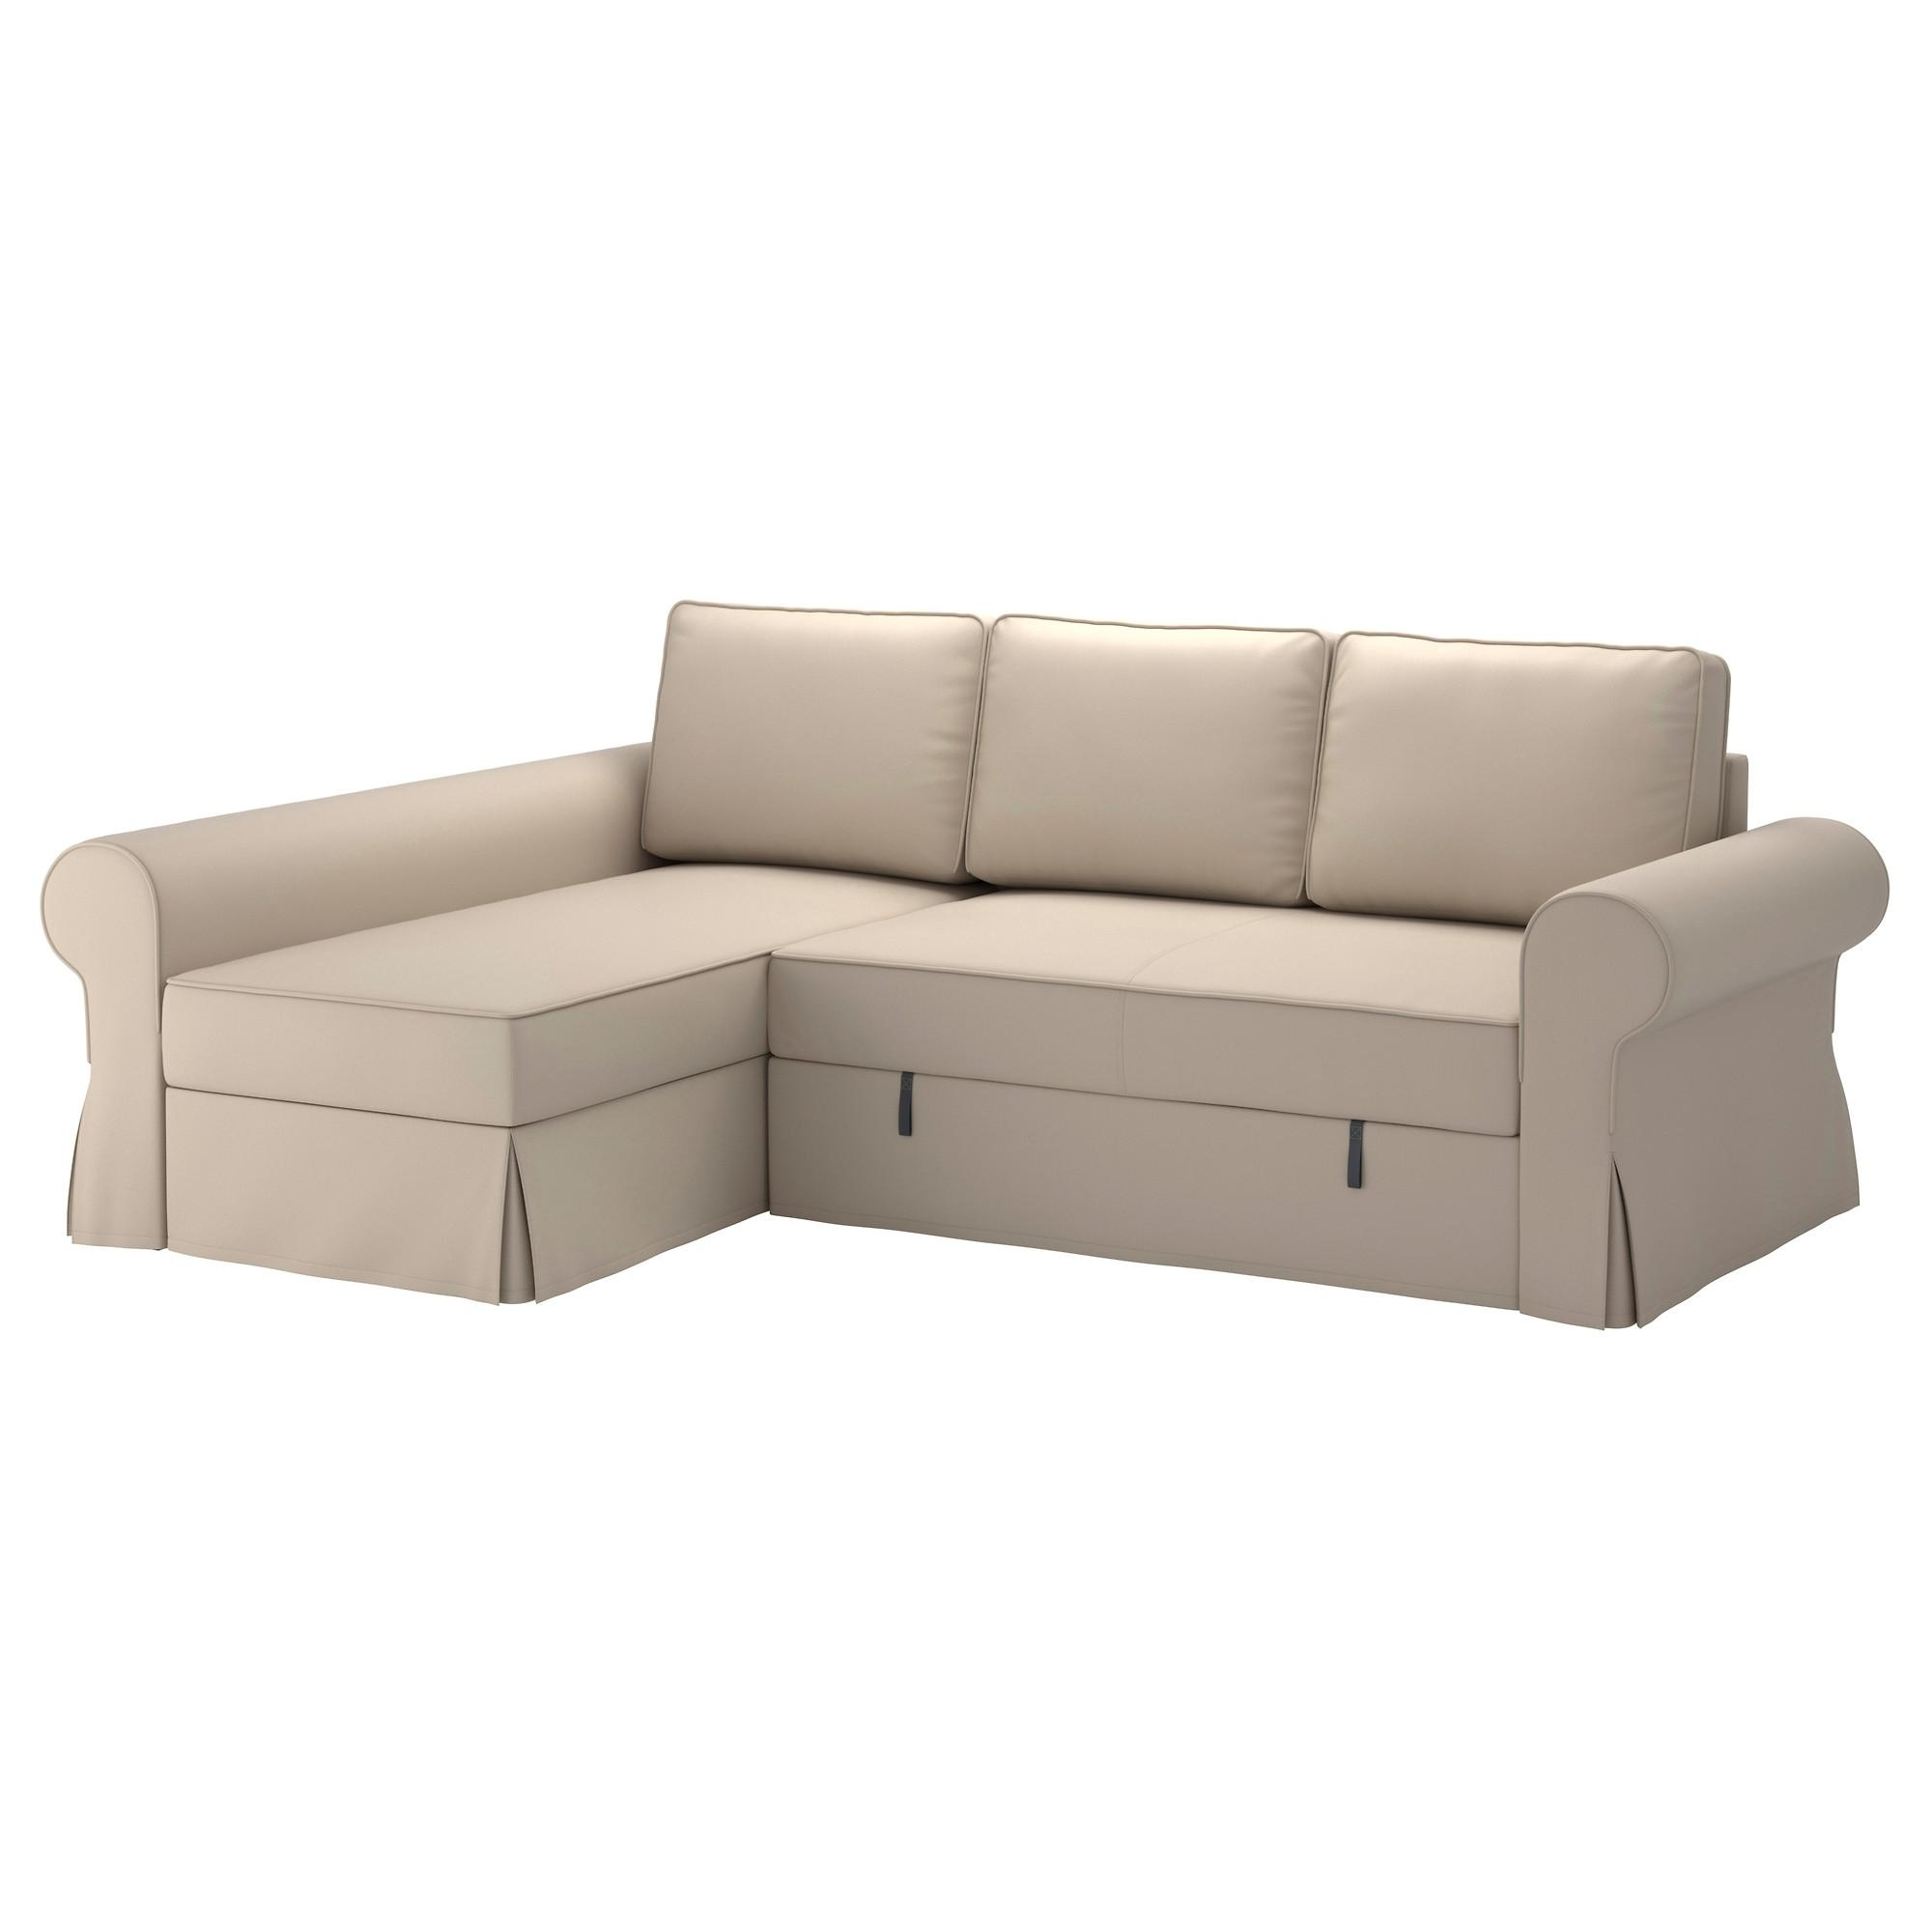 20 photos ikea chaise lounge sofa sofa ideas for Chaise sofa bed